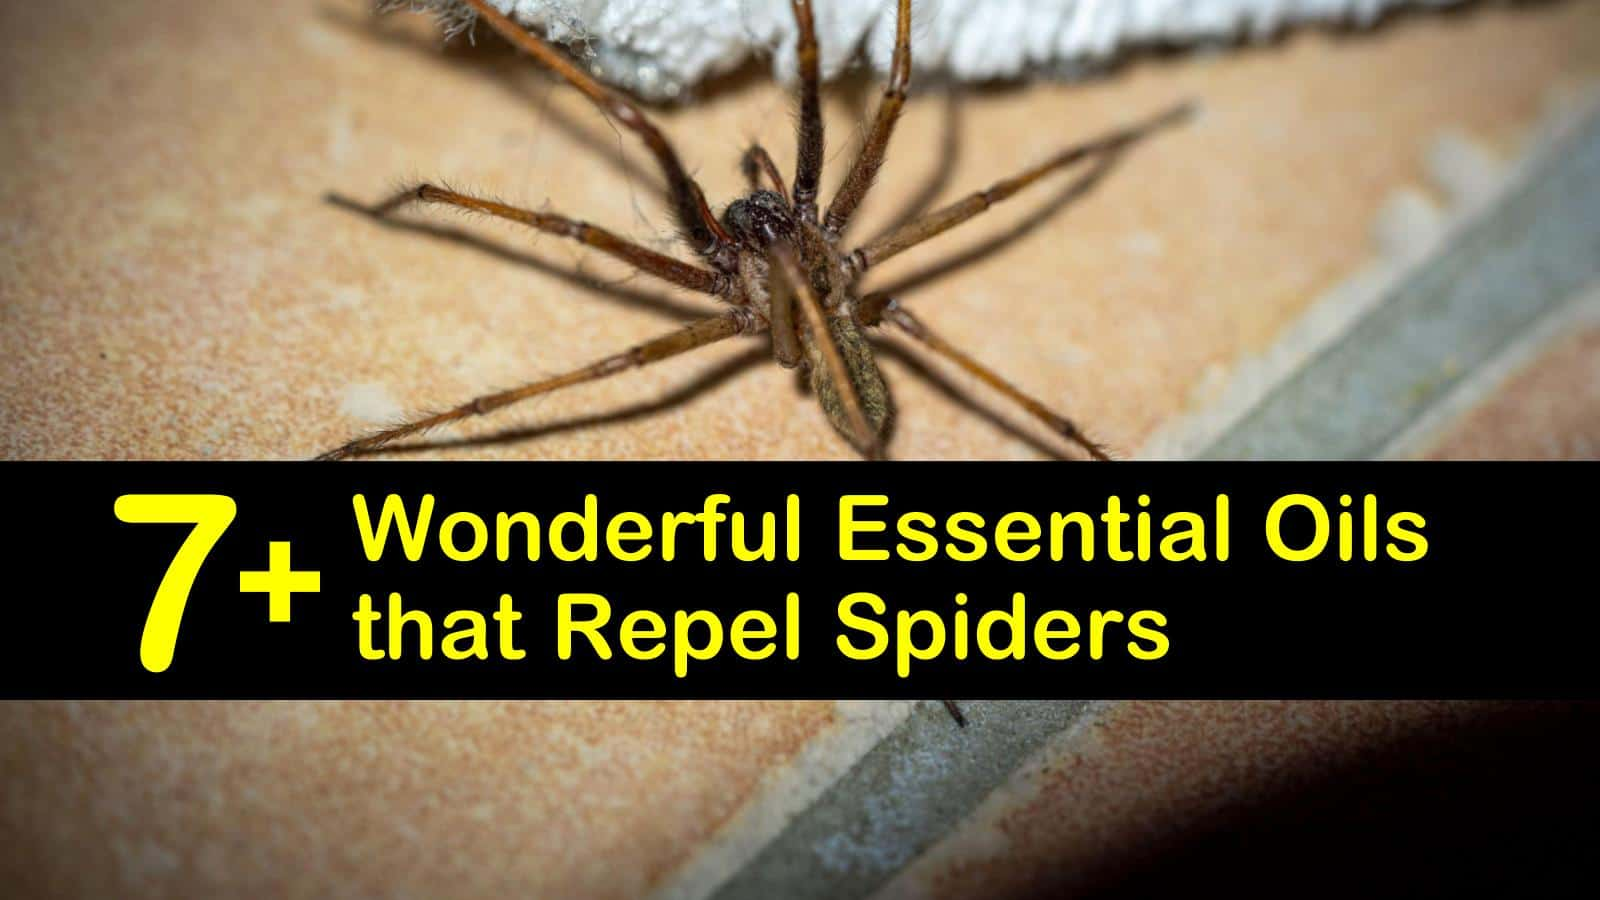 essential oils that repel spiders titleimg1